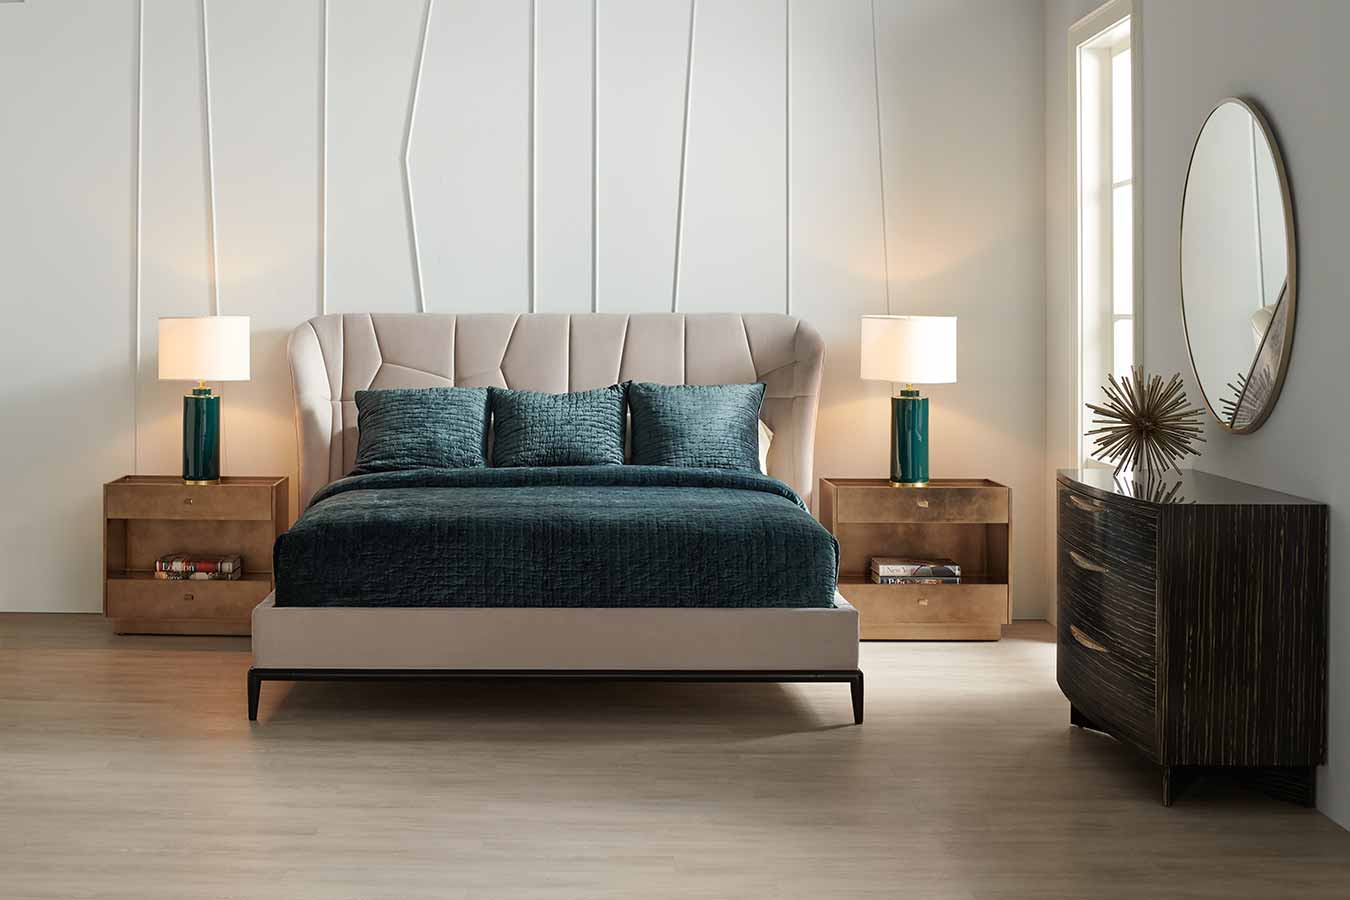 Modern Edge Collection Bedroom | Contemporary Modern Luxury Exclusive Designer Handcrafted Furniture | Sandton Johannesburg